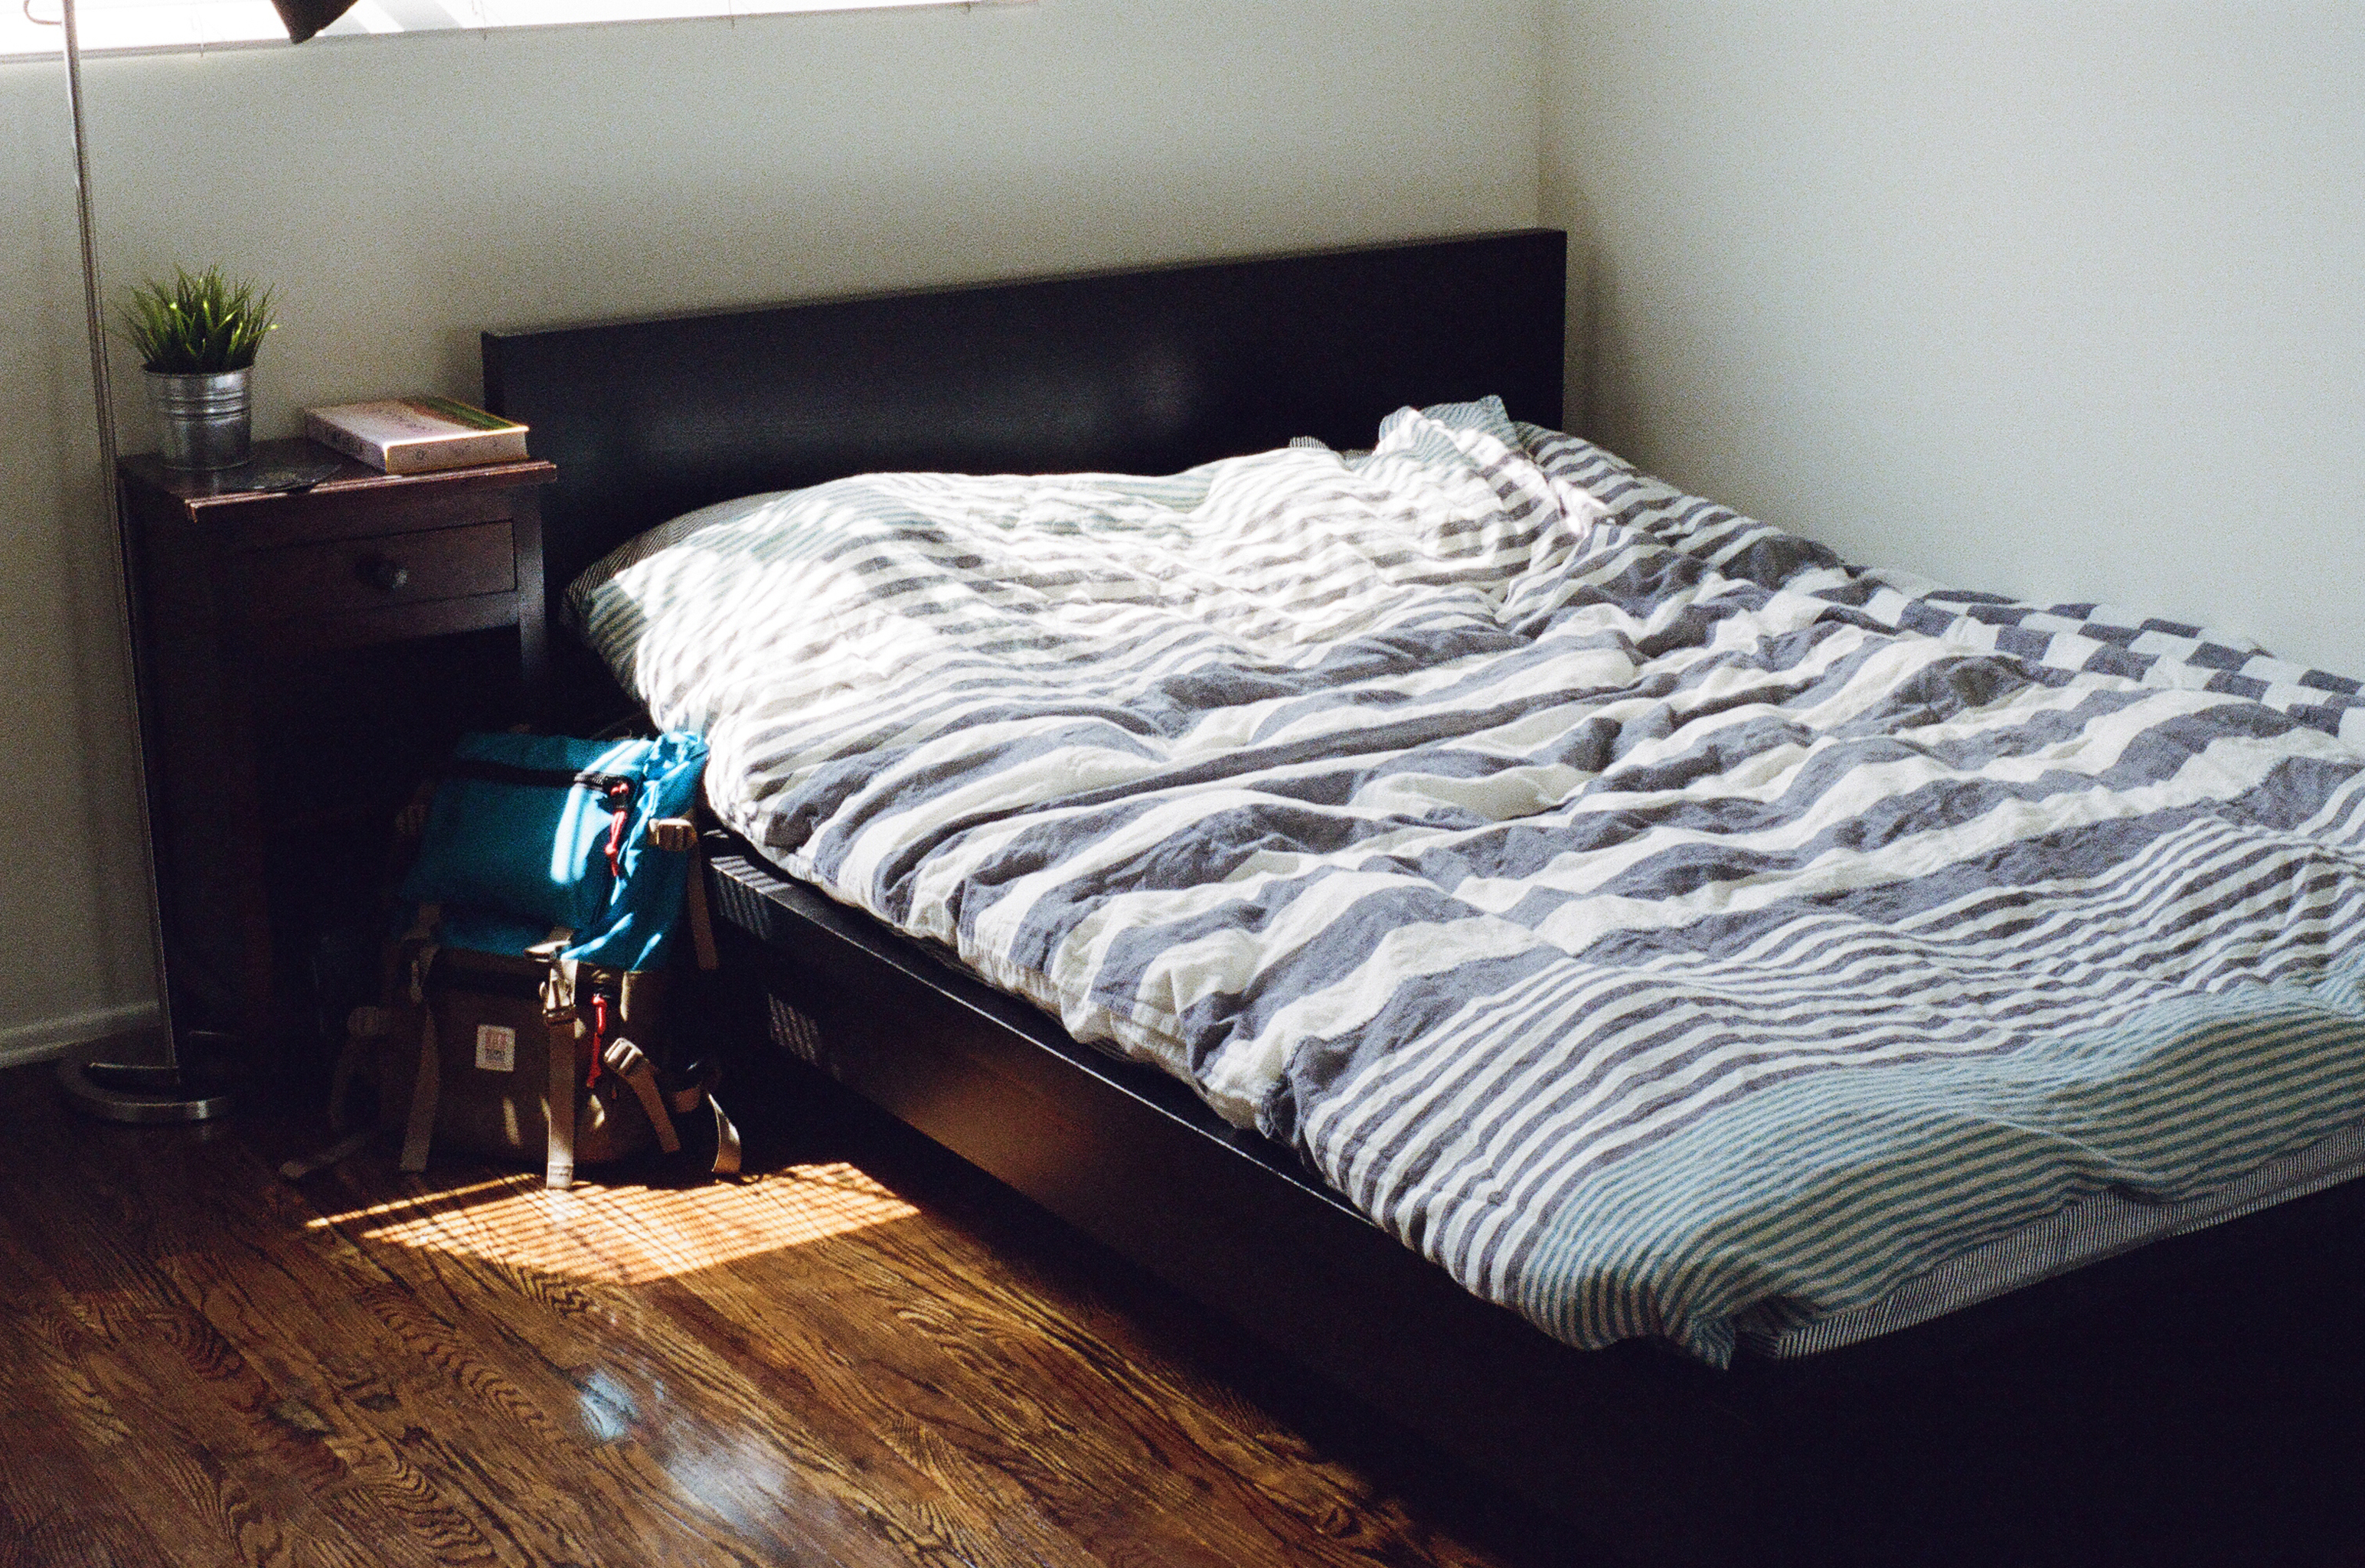 Bed Pictures bed images · pexels · free stock photos